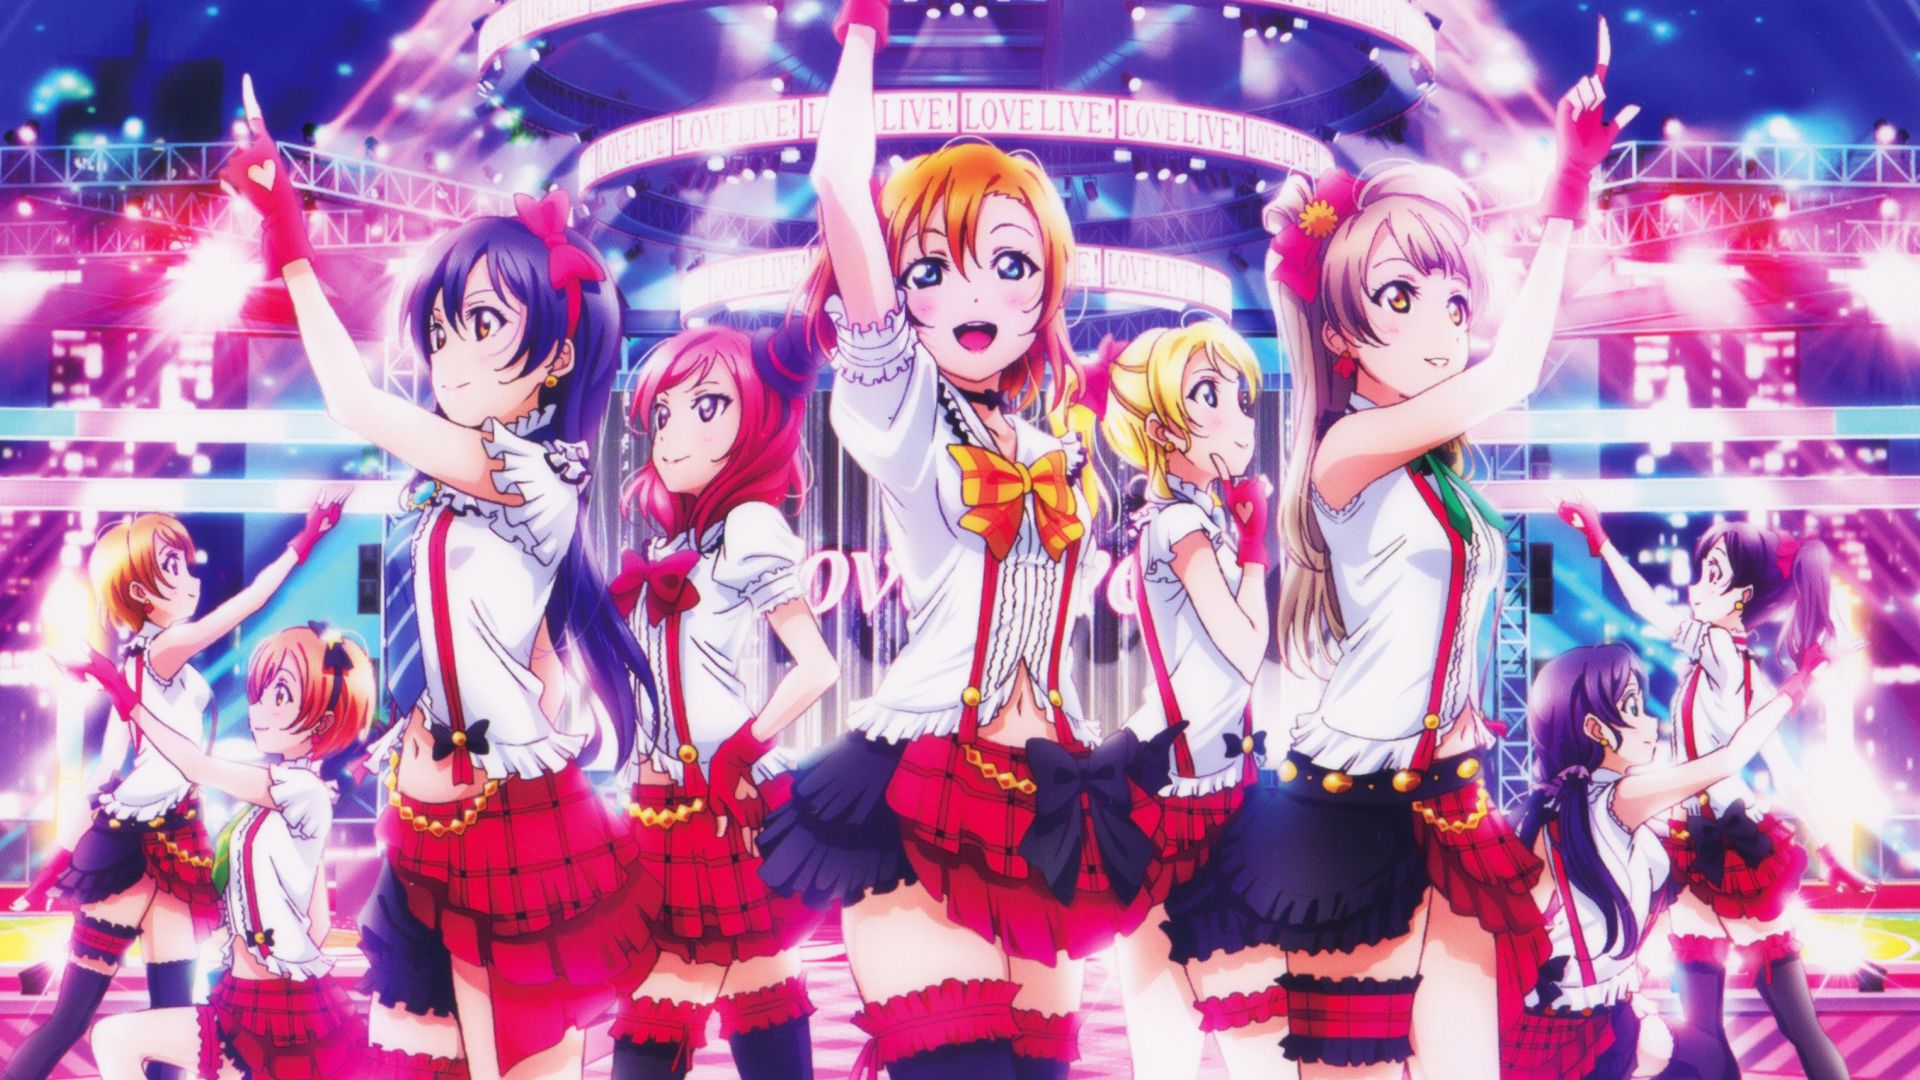 21540_lovelive_PC